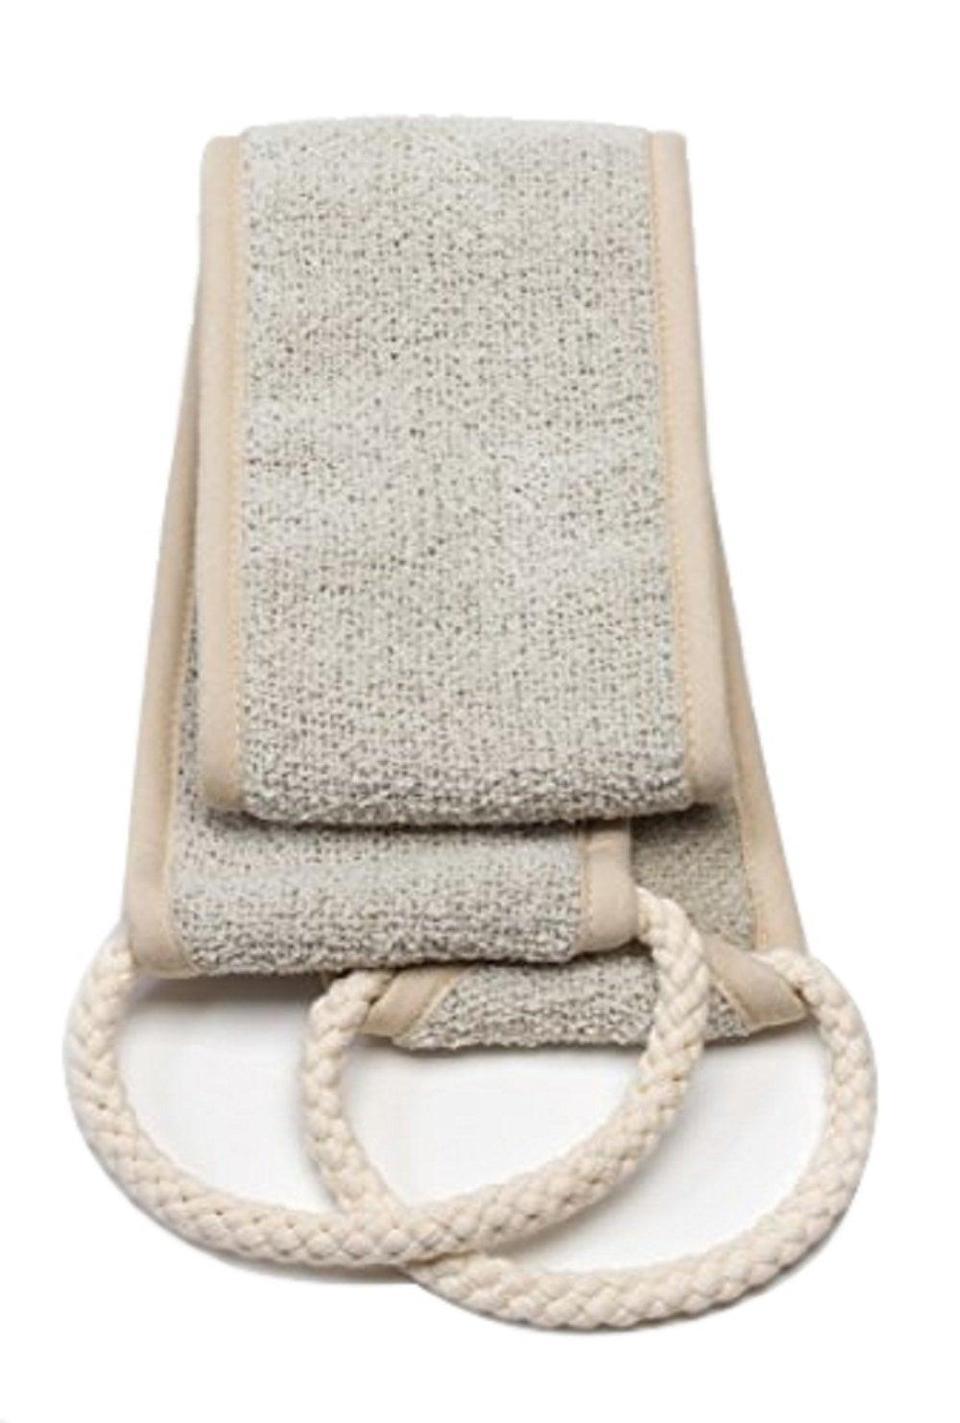 <p>Exfoliate hard to reach places with this <span>Aquis - Exfoliating Back Scrubber</span> ($12) for a deep clean.</p>